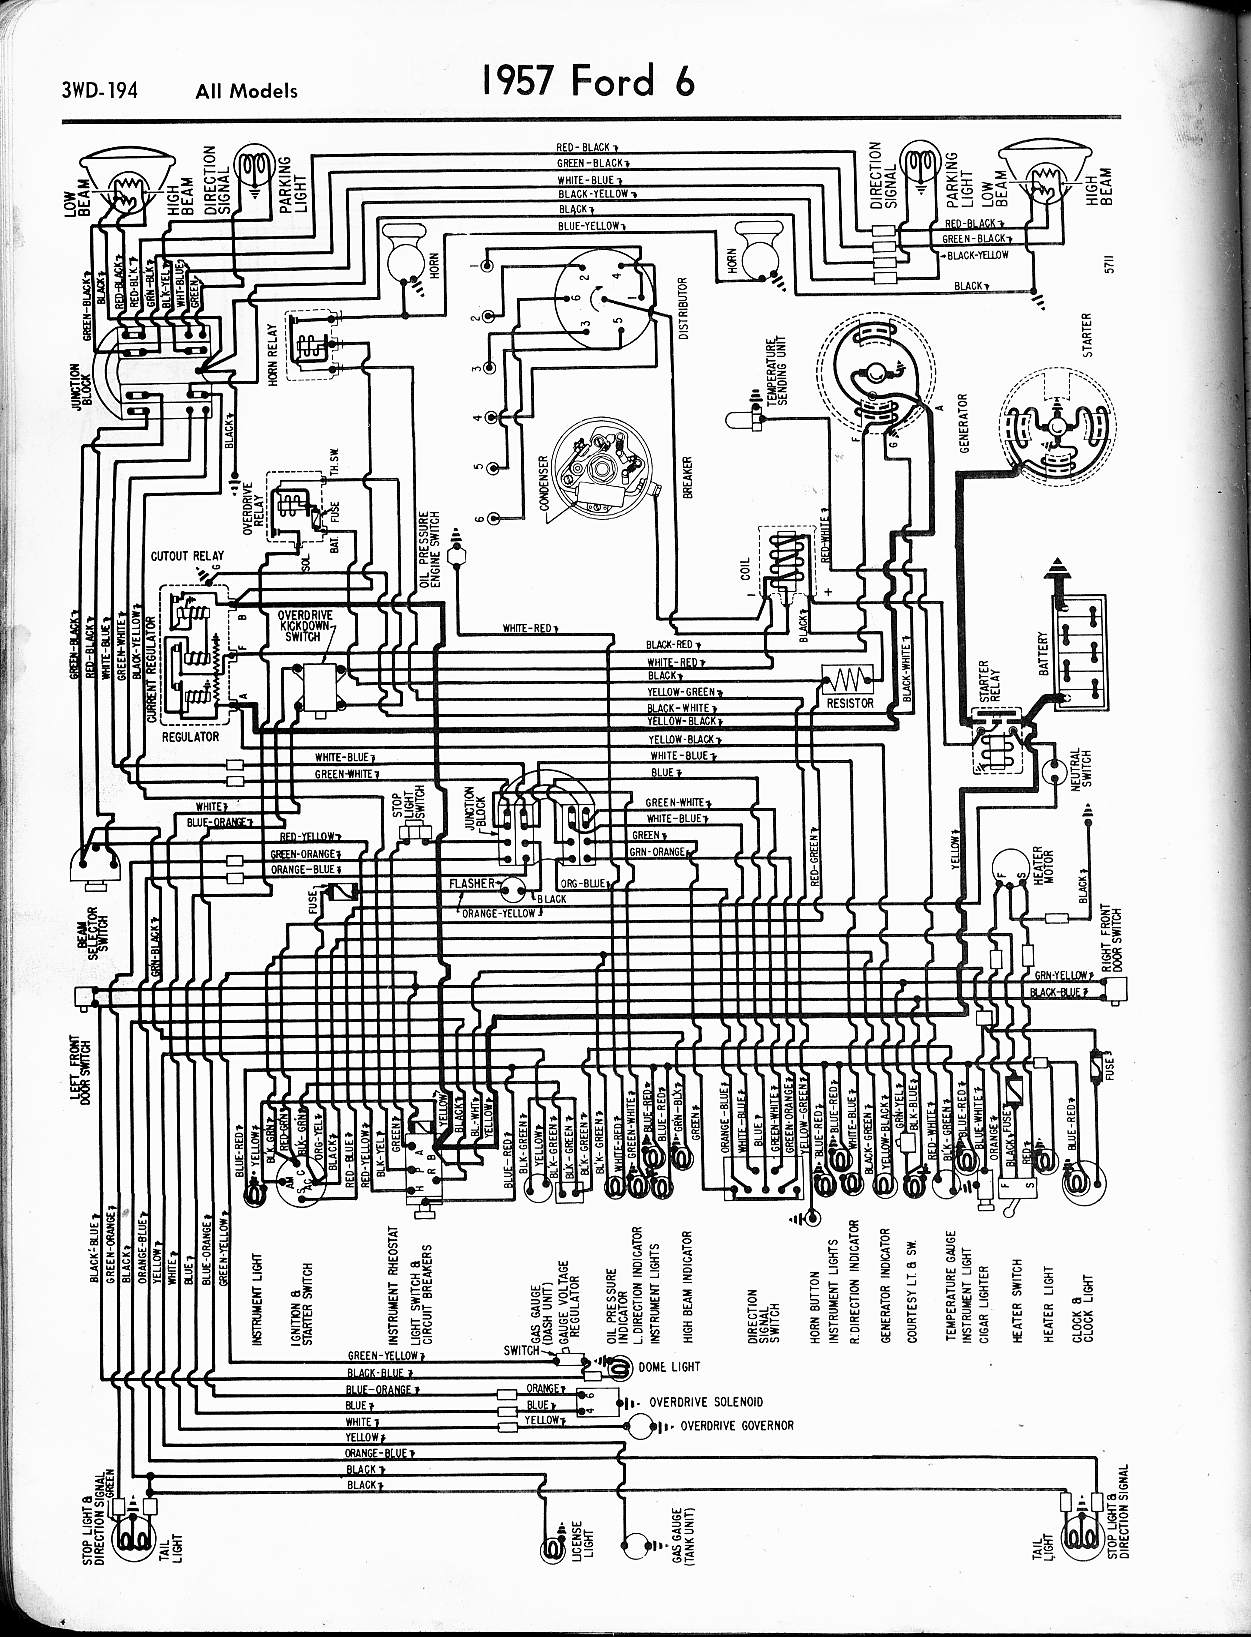 MWire5765 194 57 65 ford wiring diagrams 1954 chevy truck wiring diagram at n-0.co